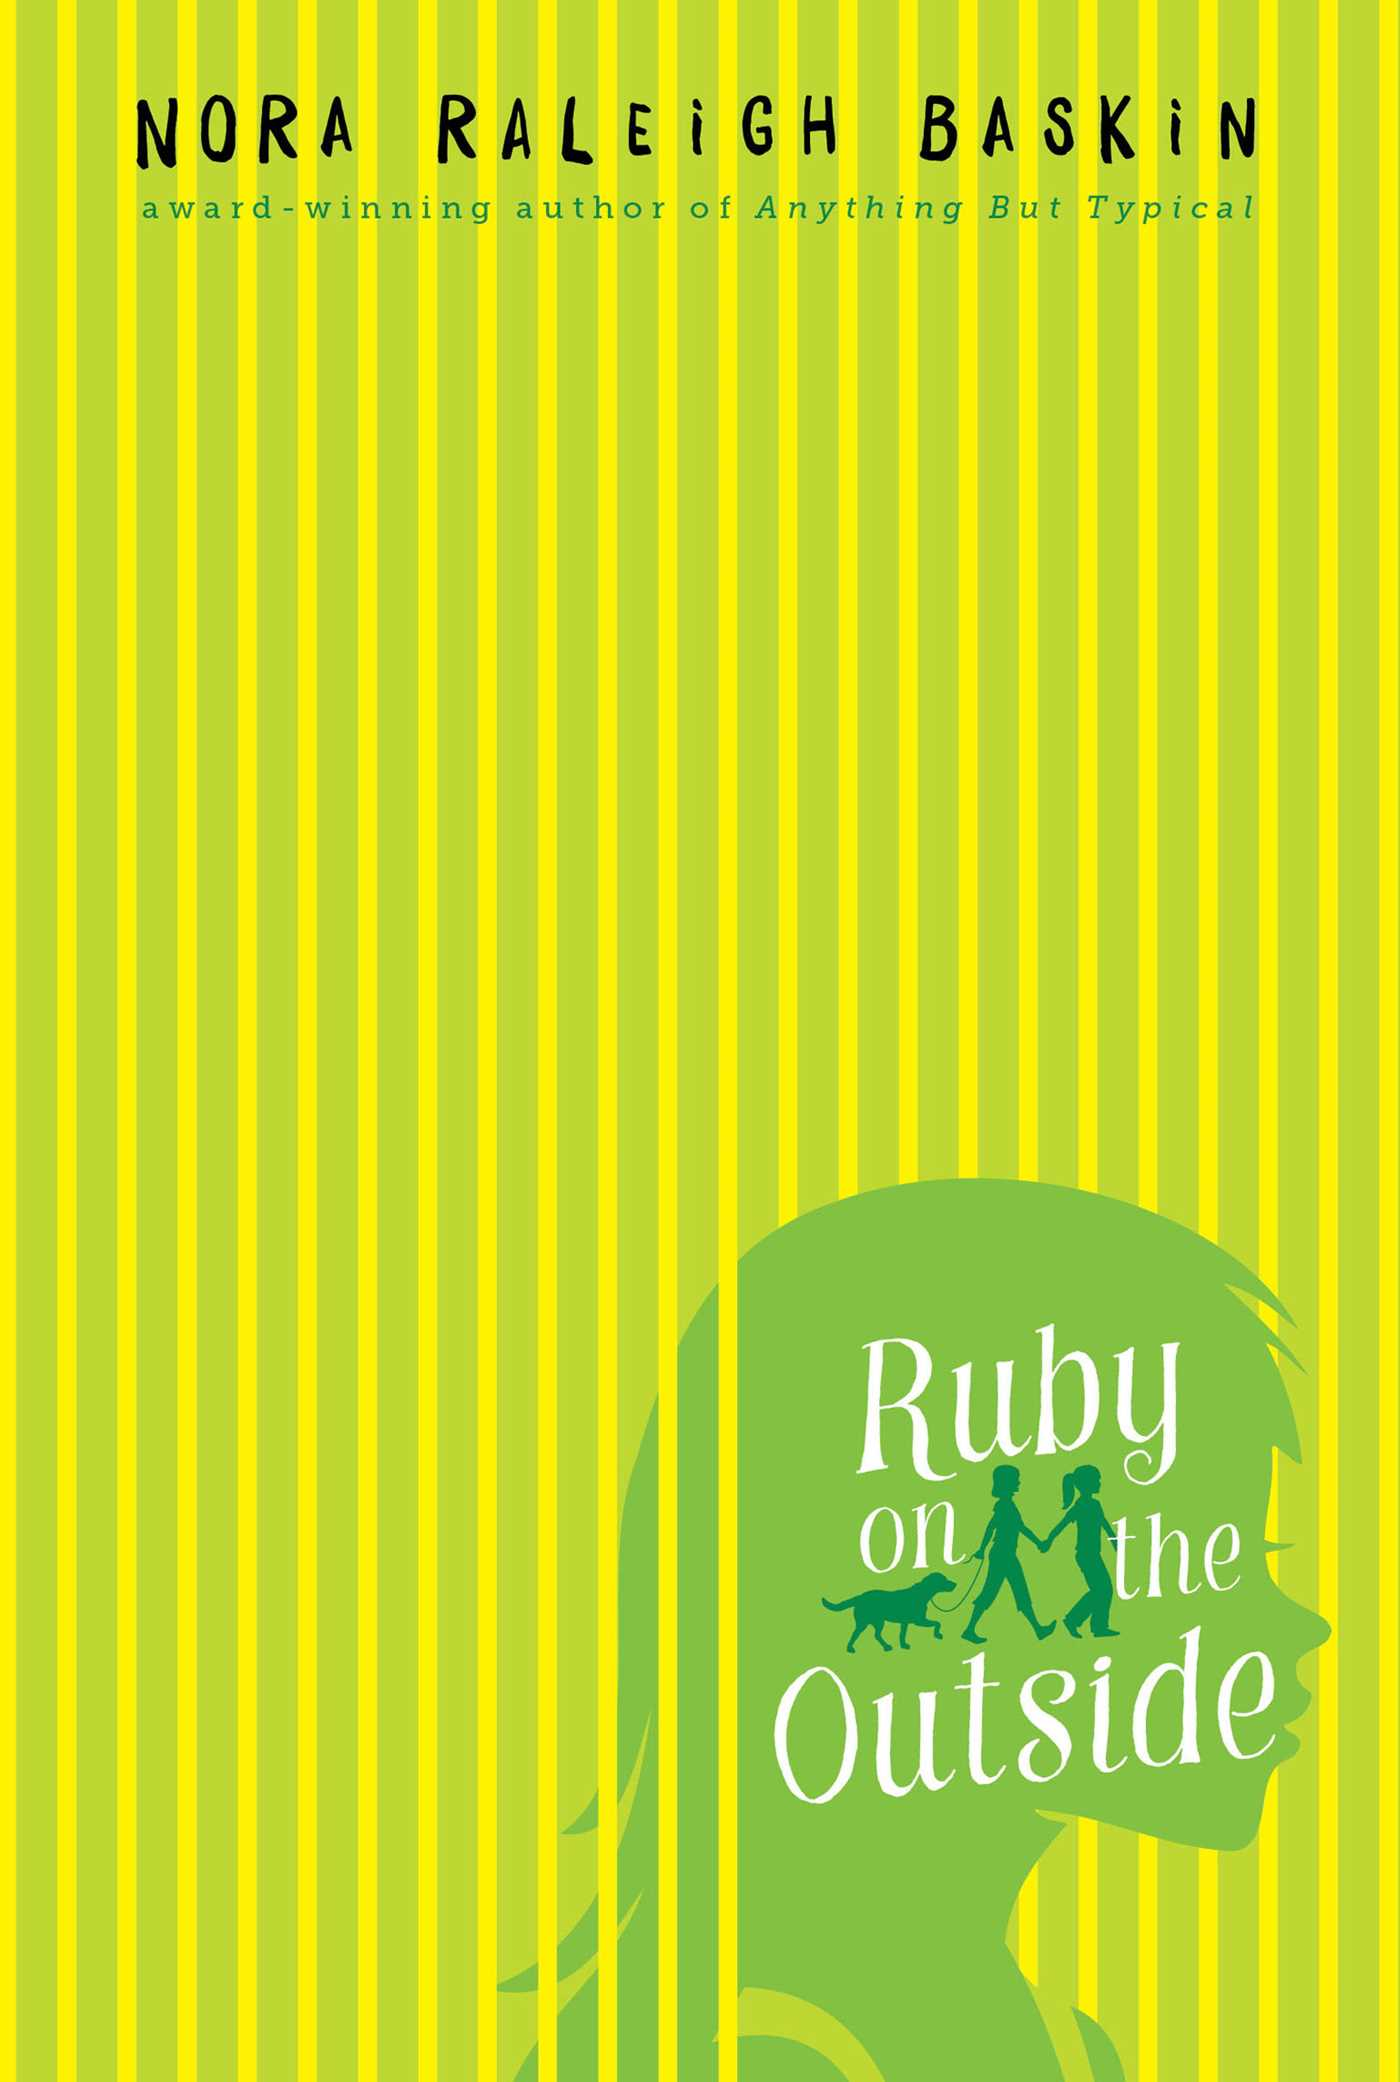 Ruby on the outside 9781442485044 hr